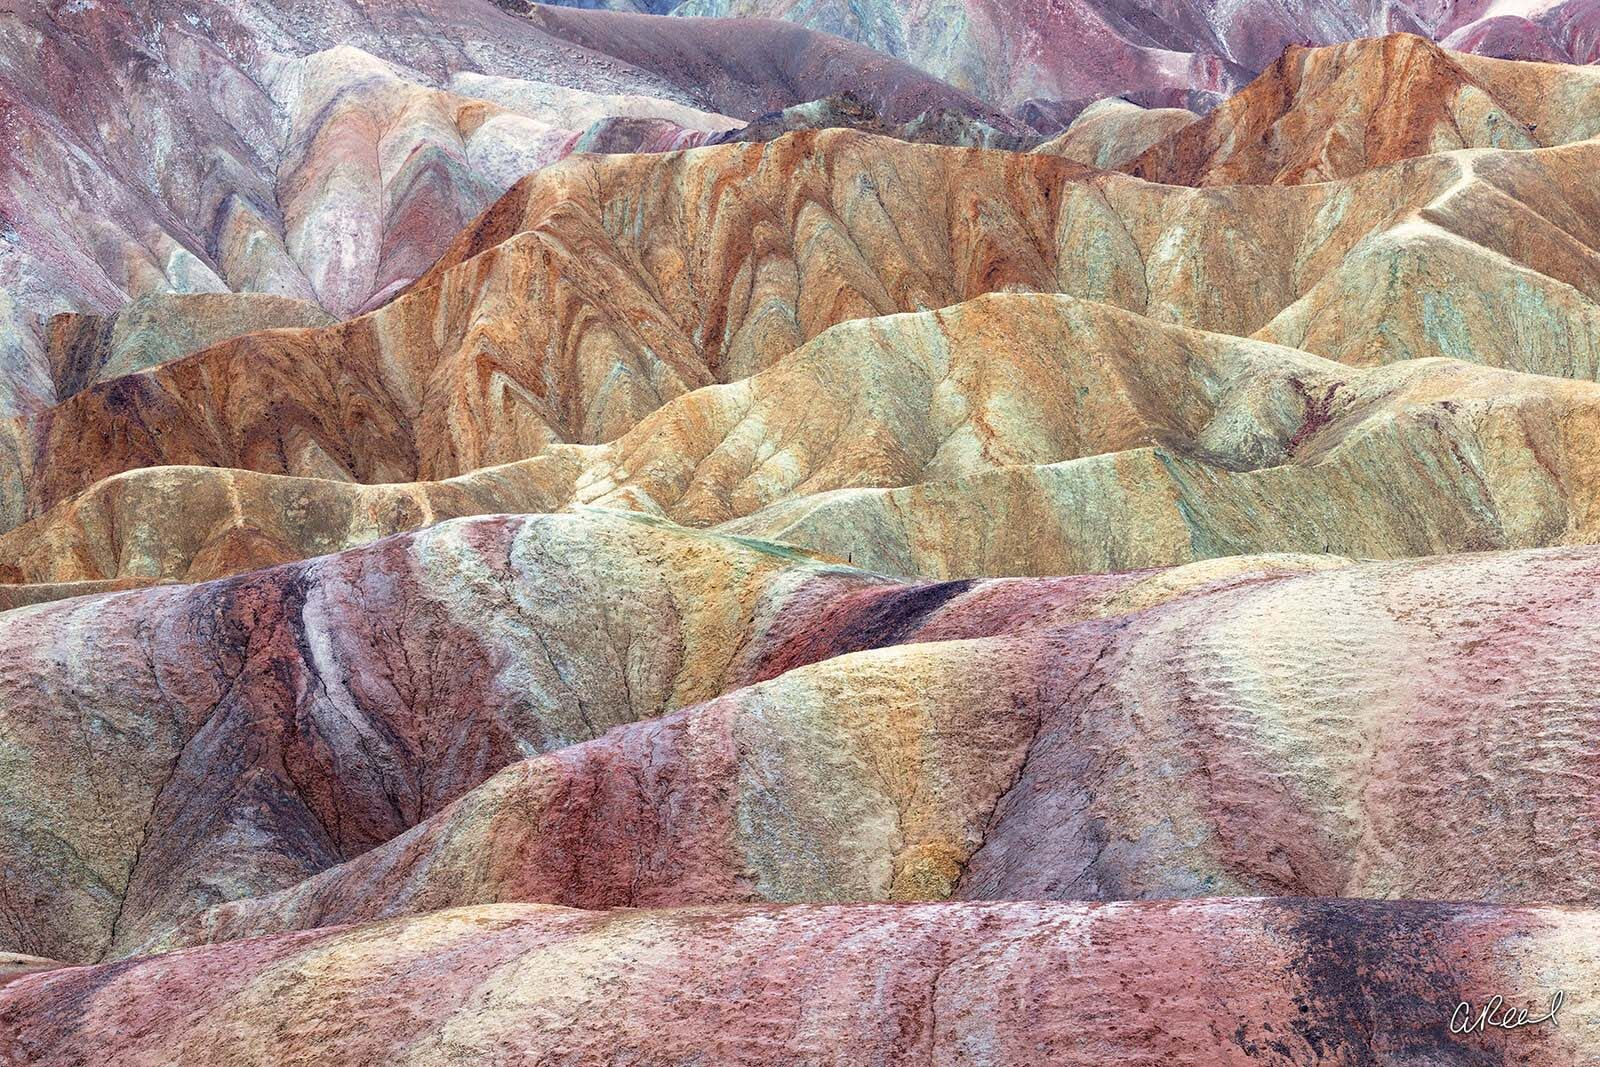 Fine Art, Limited Edition, Aaron Reed Photography, Zabriskie Point, Death Valley National Park, Furnace Creek, California, , photo